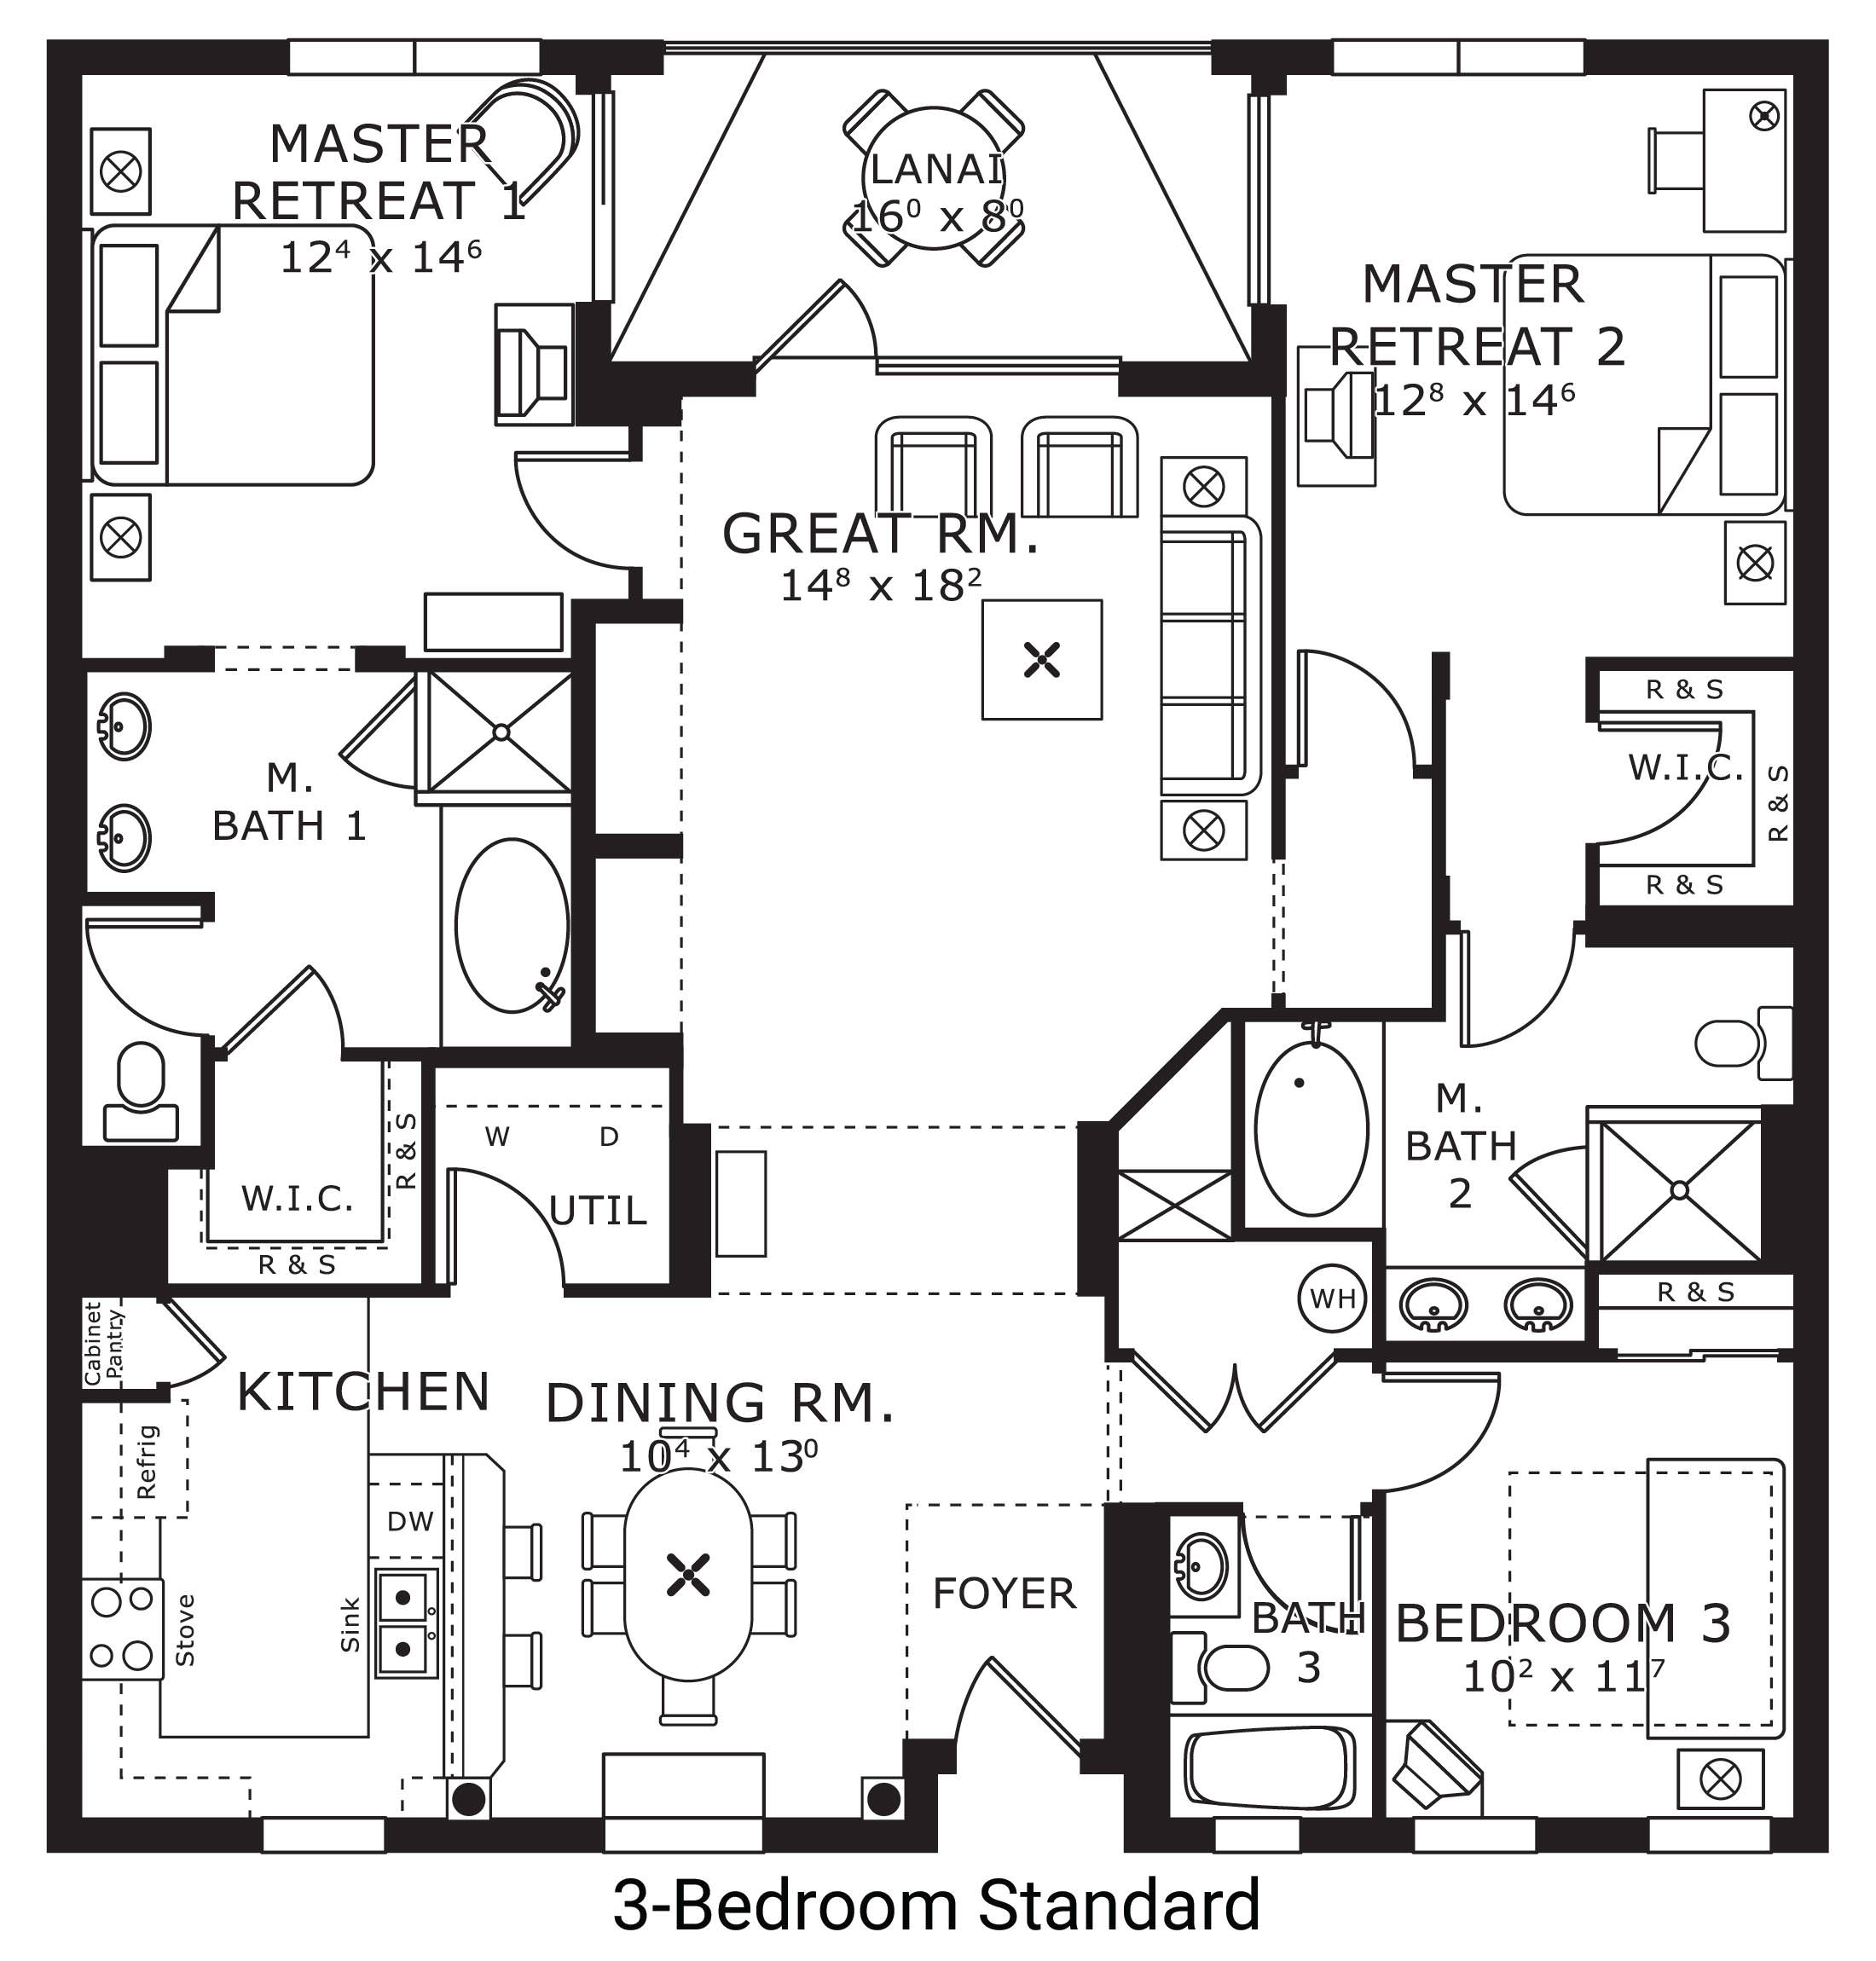 floor plan map for three bedroom standard, The Berkley, Orlando